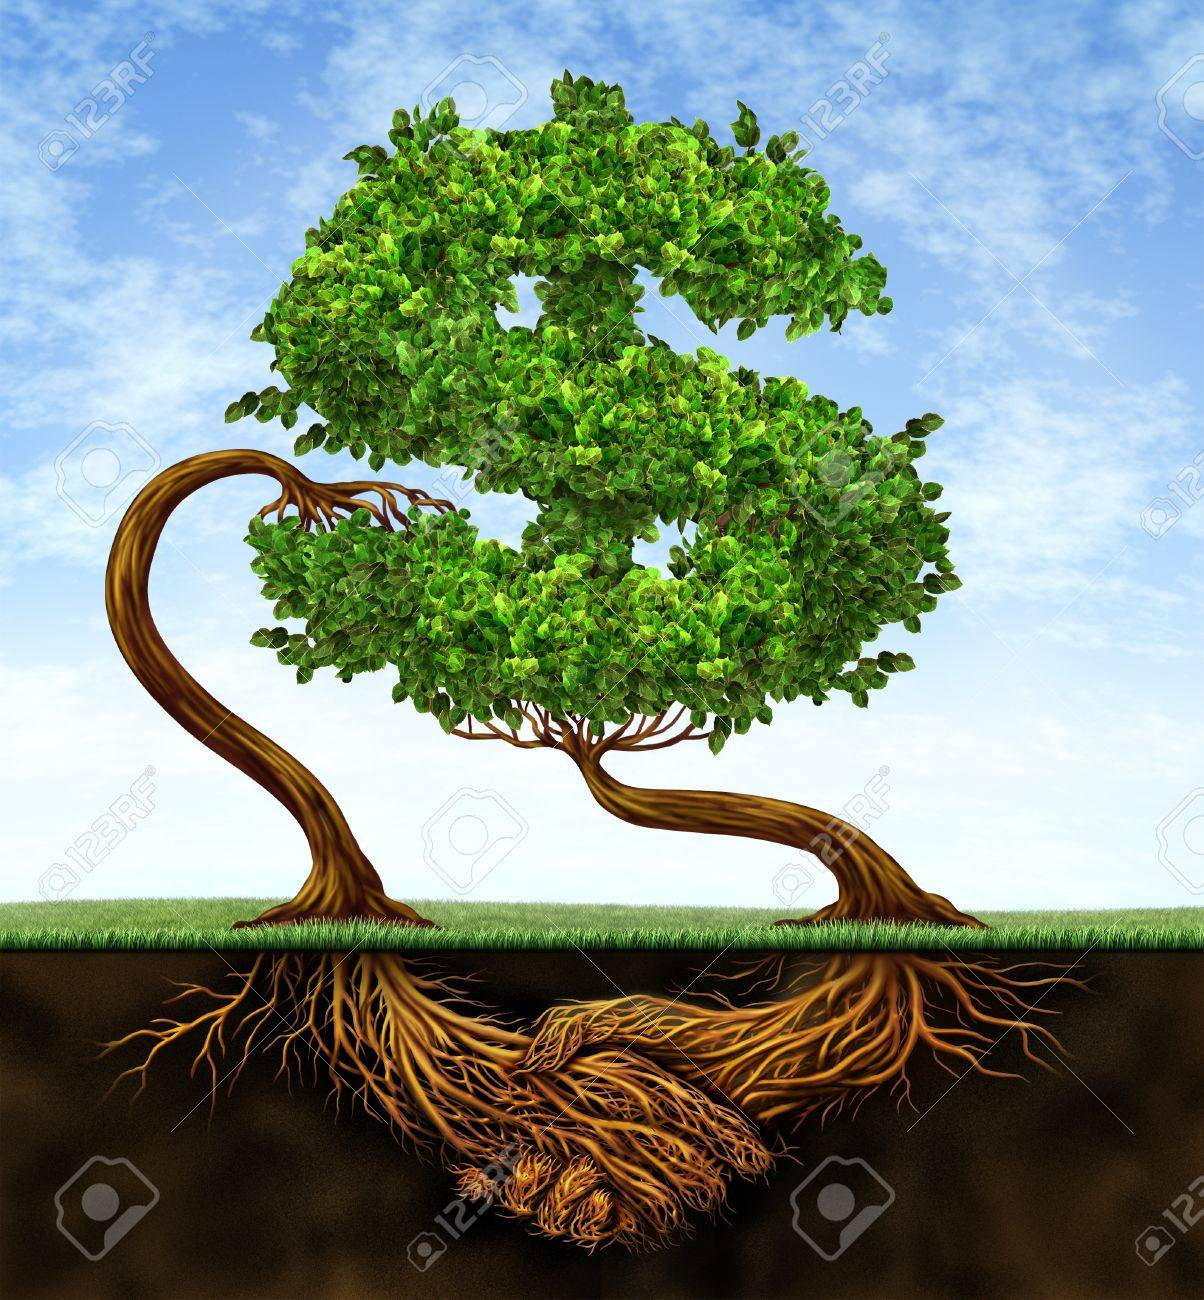 Financial growth agreement with two trees in the shape of a dollar sign and the roots in the form of hands shaking in partnership of a contract deal  for wealth success on a blue sky Stock Photo - 13876629